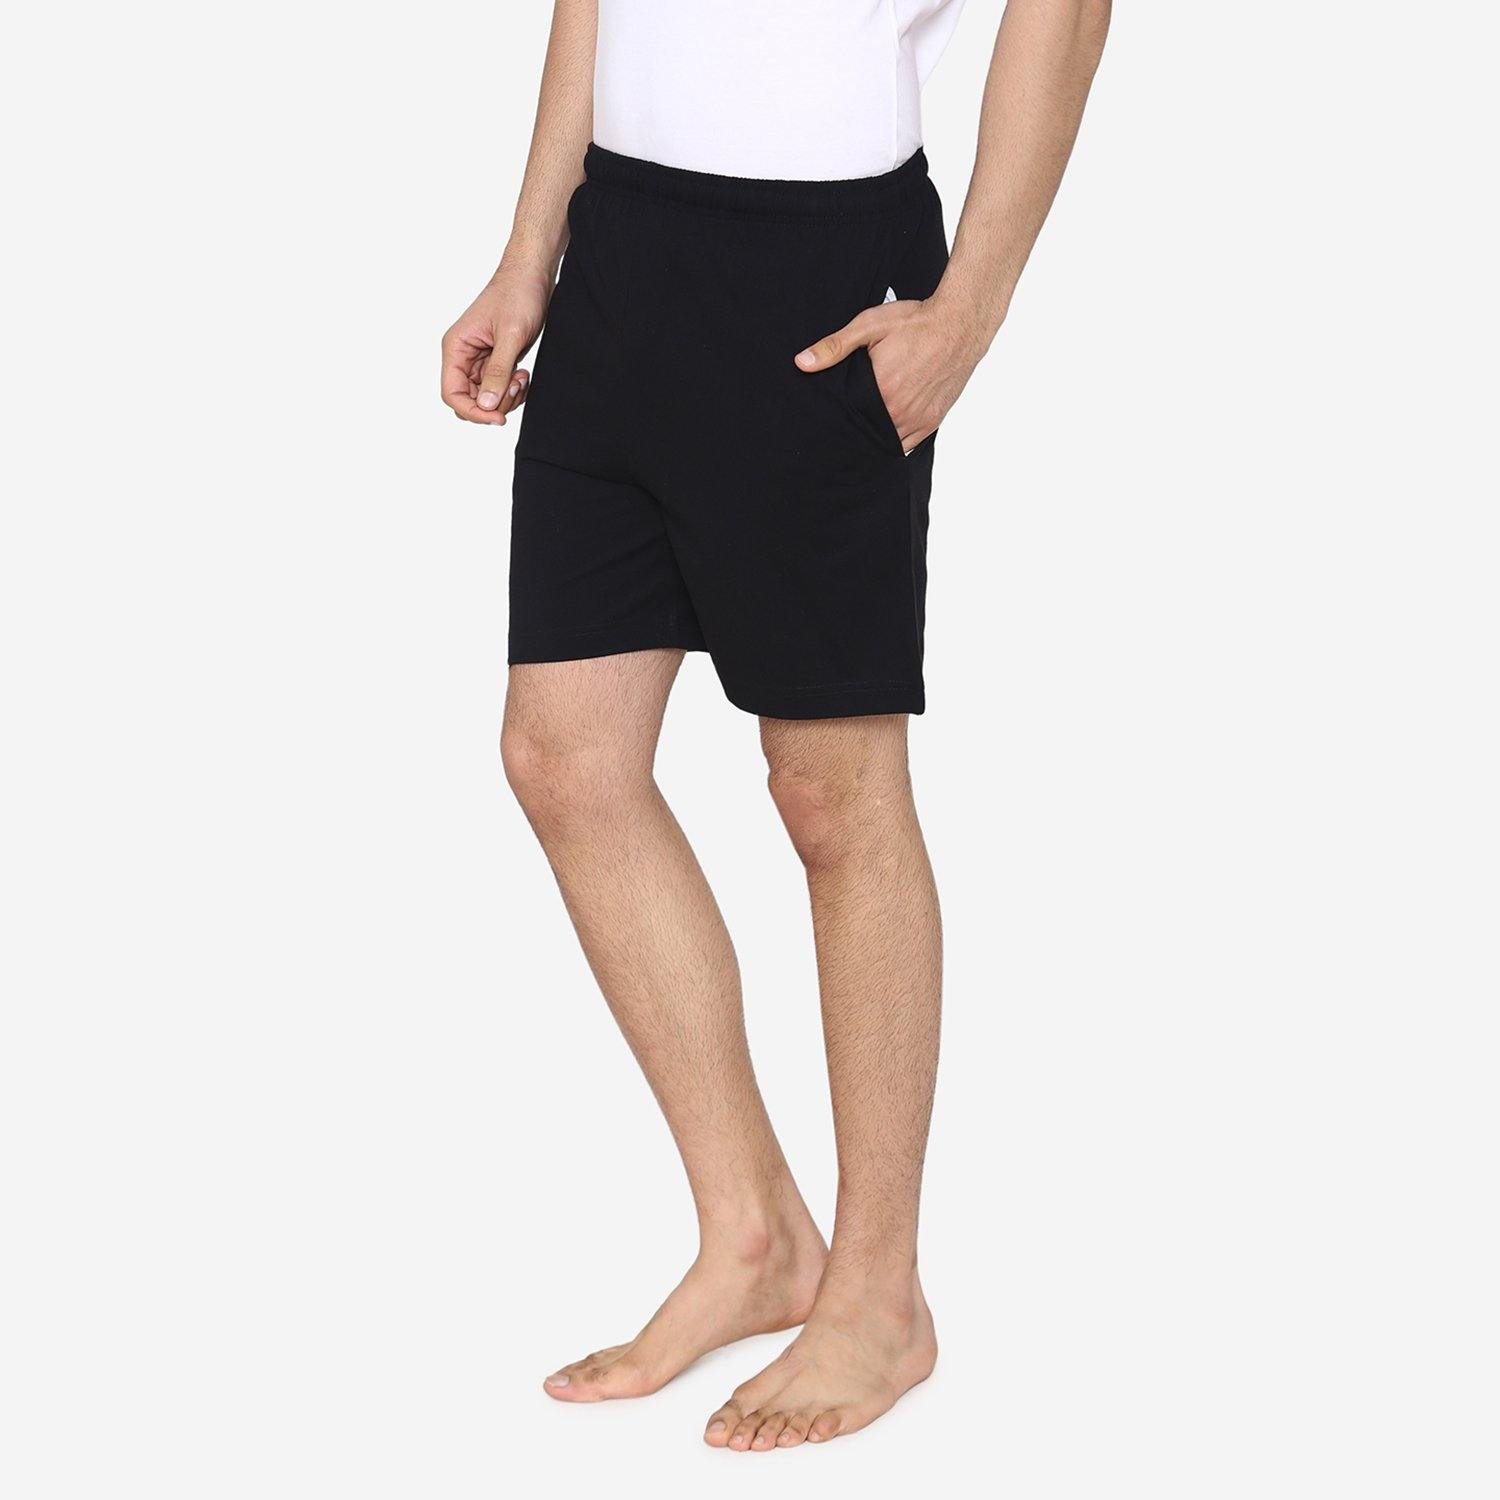 Men's Plain Comfy & Casual Shorts For Summer - Black